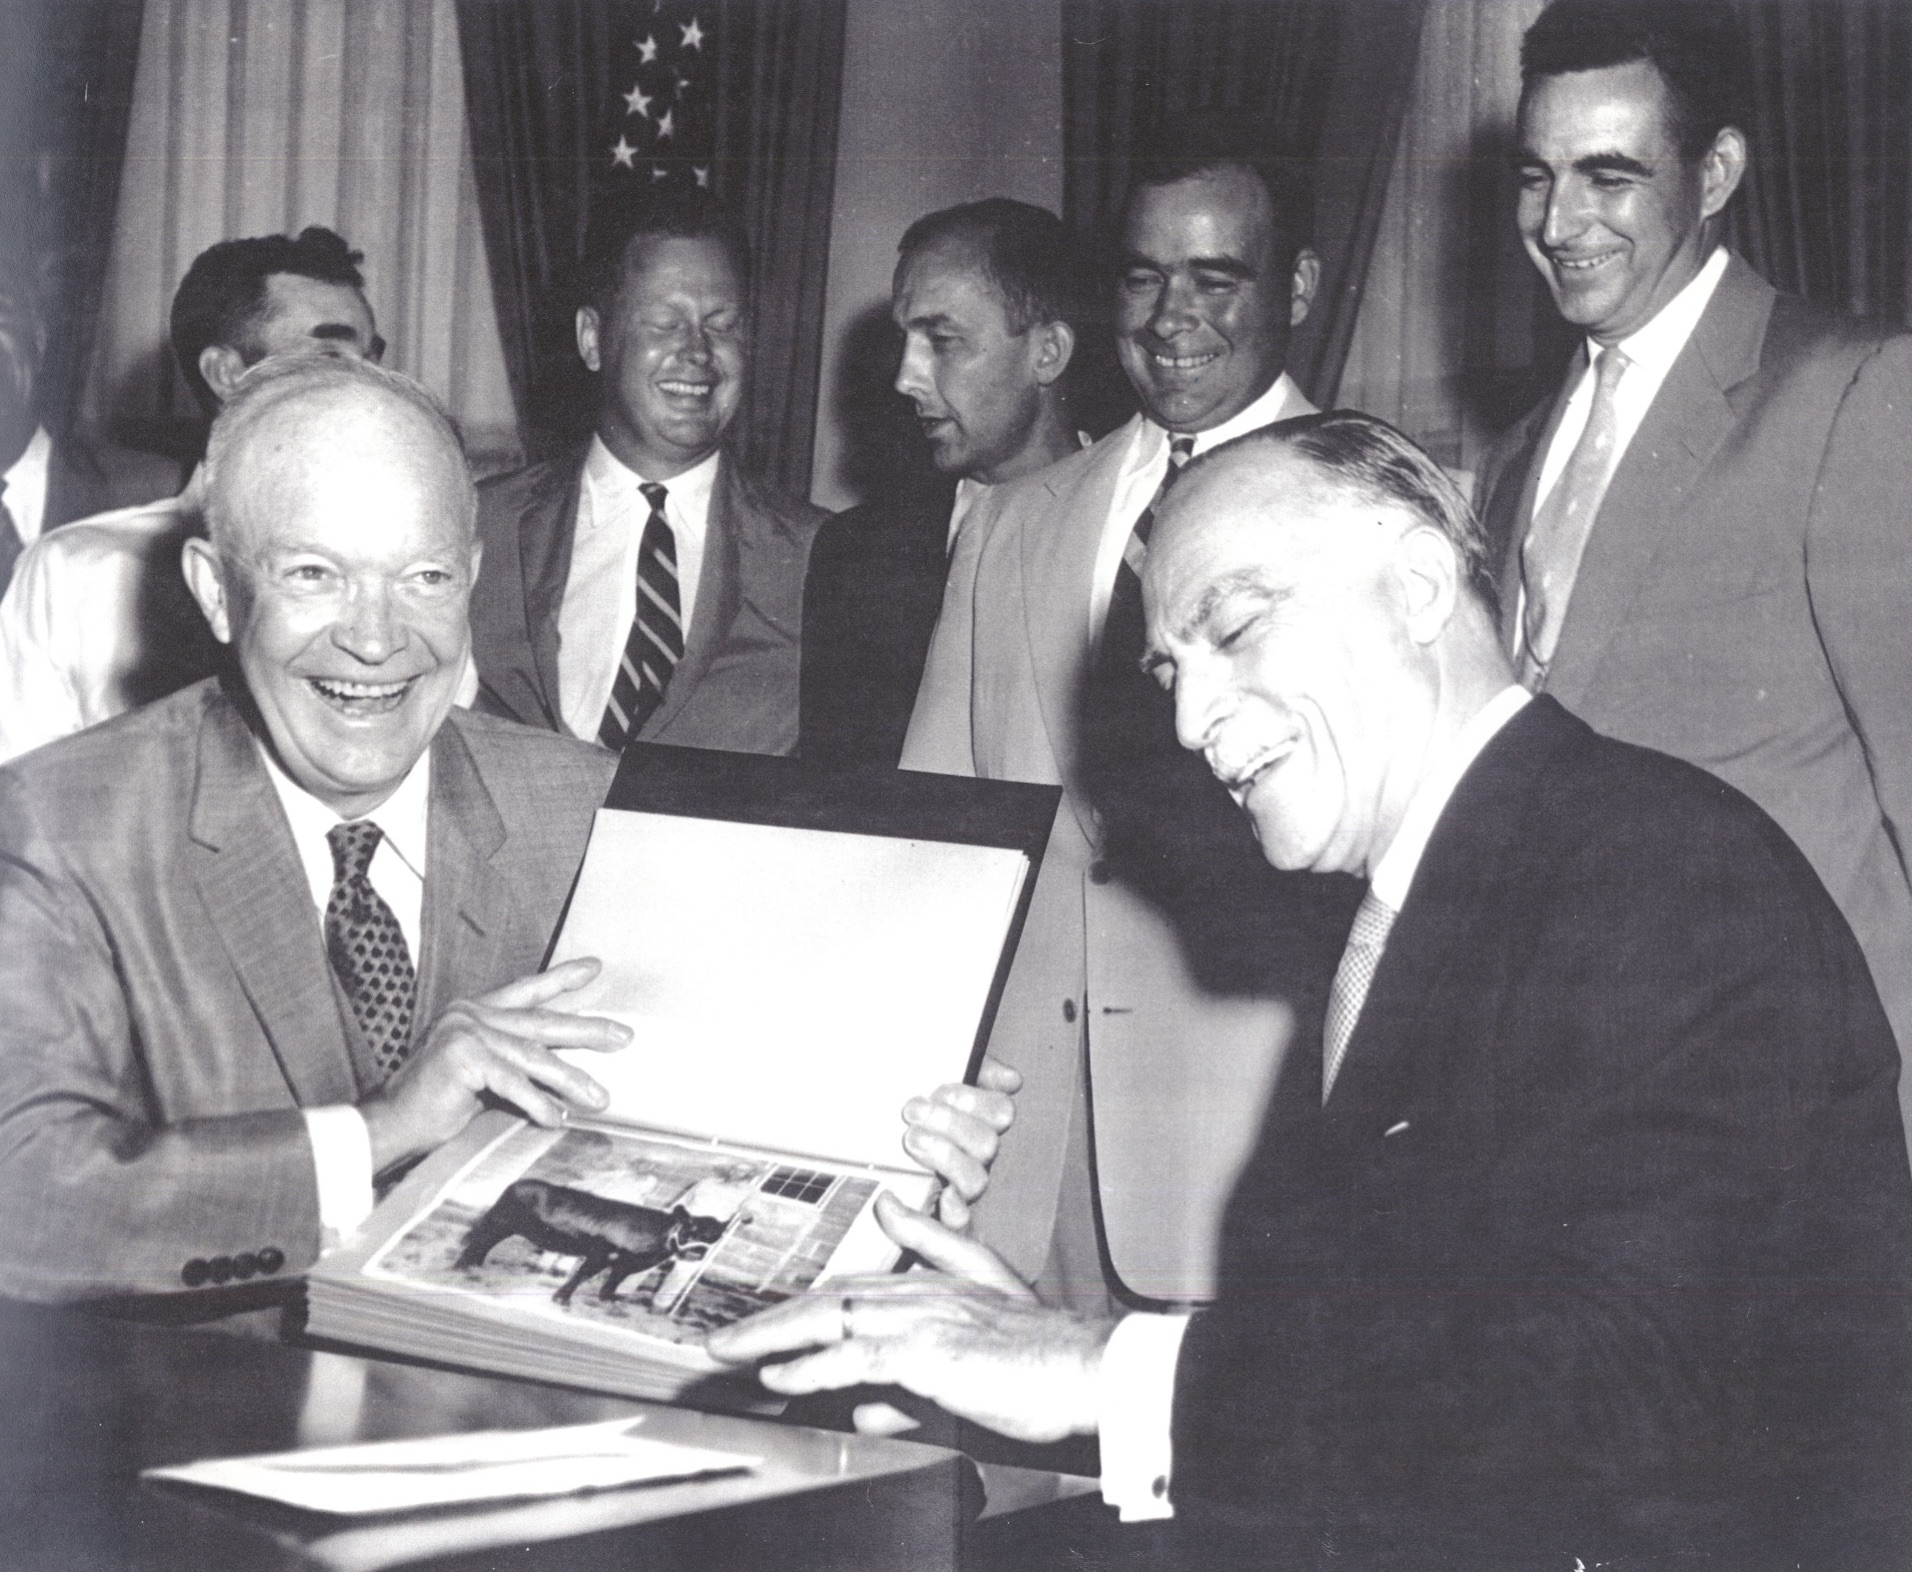 President Eisenhower celebrates donating to Heifer in 1957.